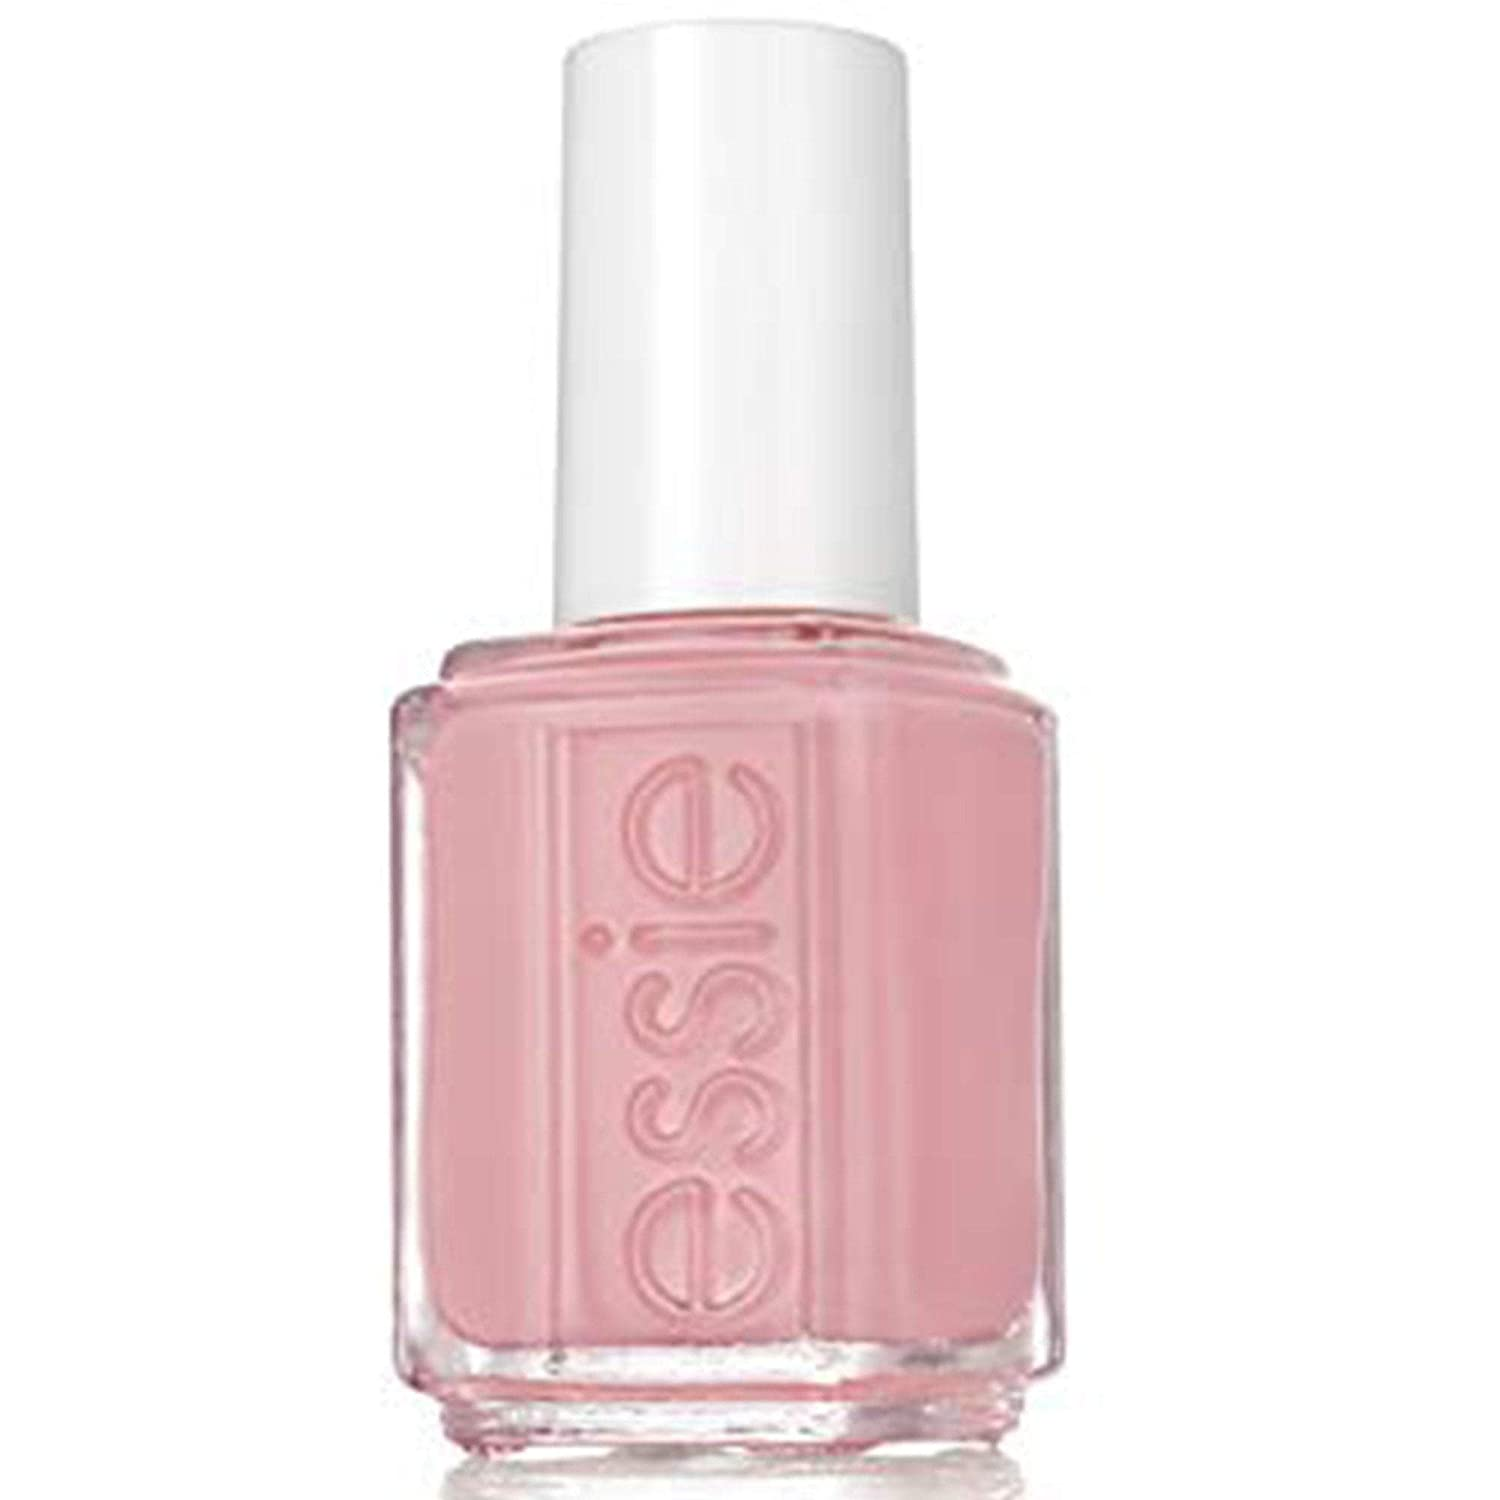 Essie Nail Lacquer – Summer 2018 Collection – Young, Wild & Me – 13.5 ml/0.46 fl oz